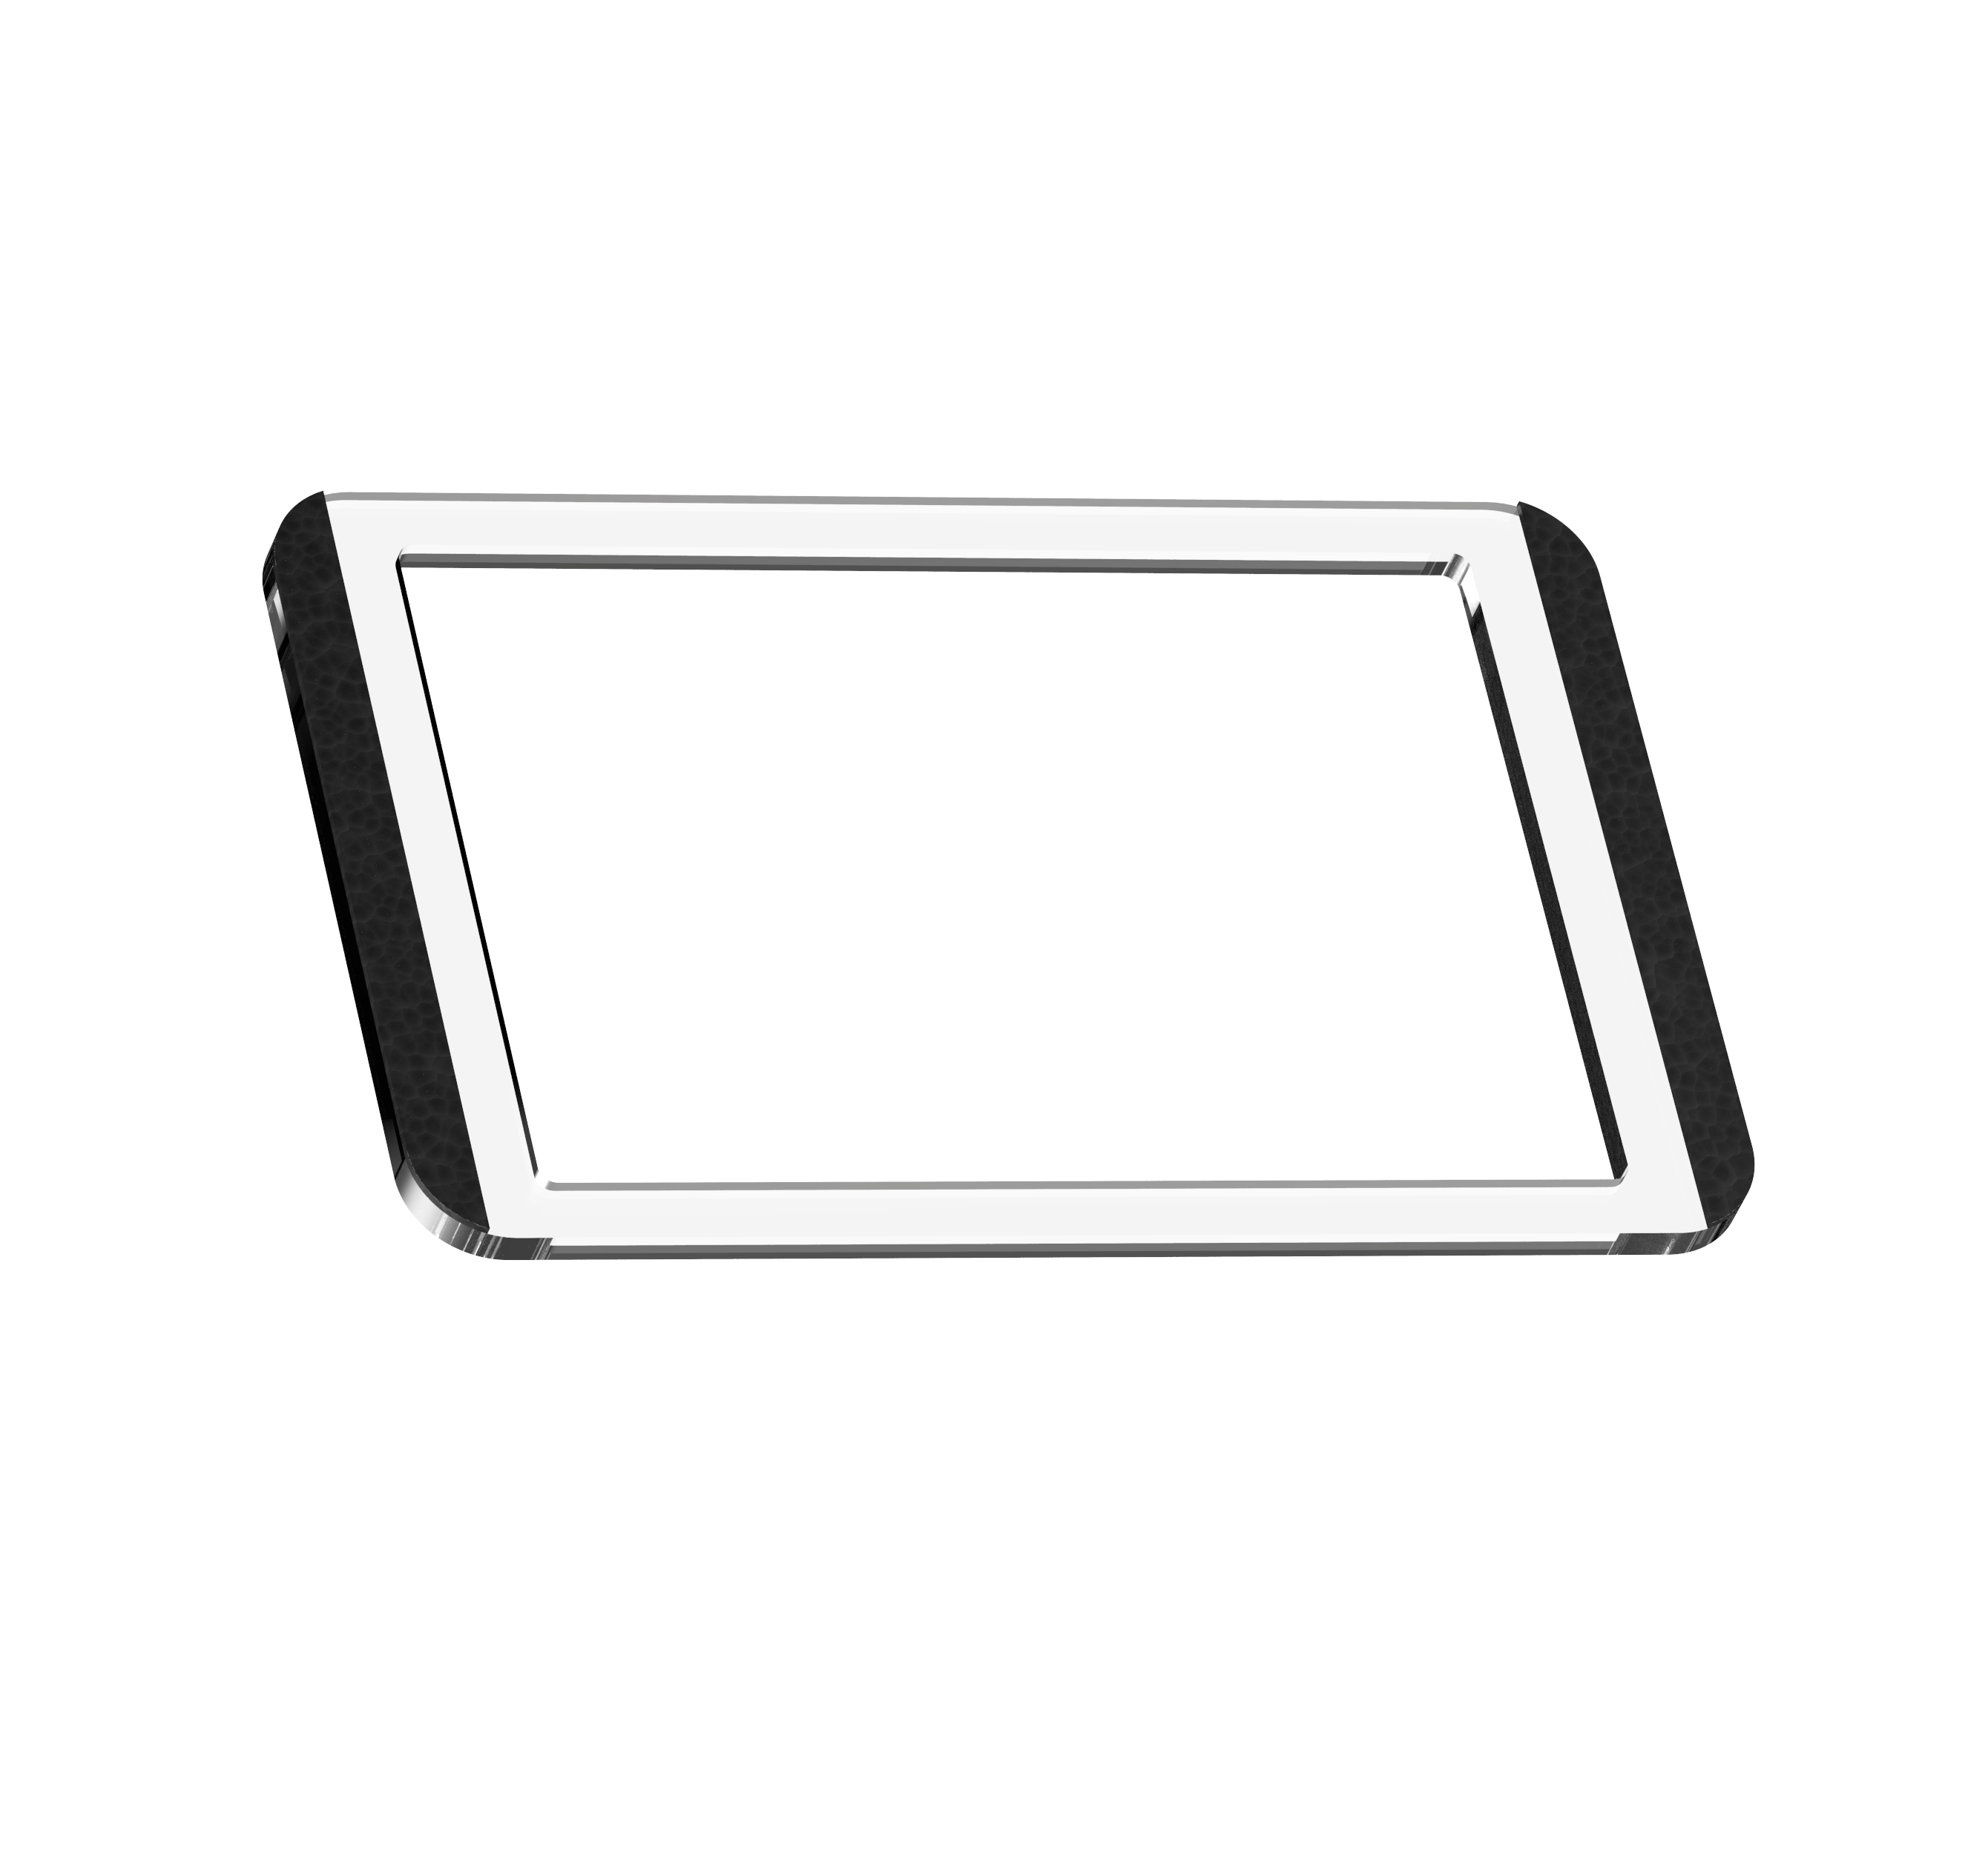 FB02202_MAIN_Plate-Holder.jpg